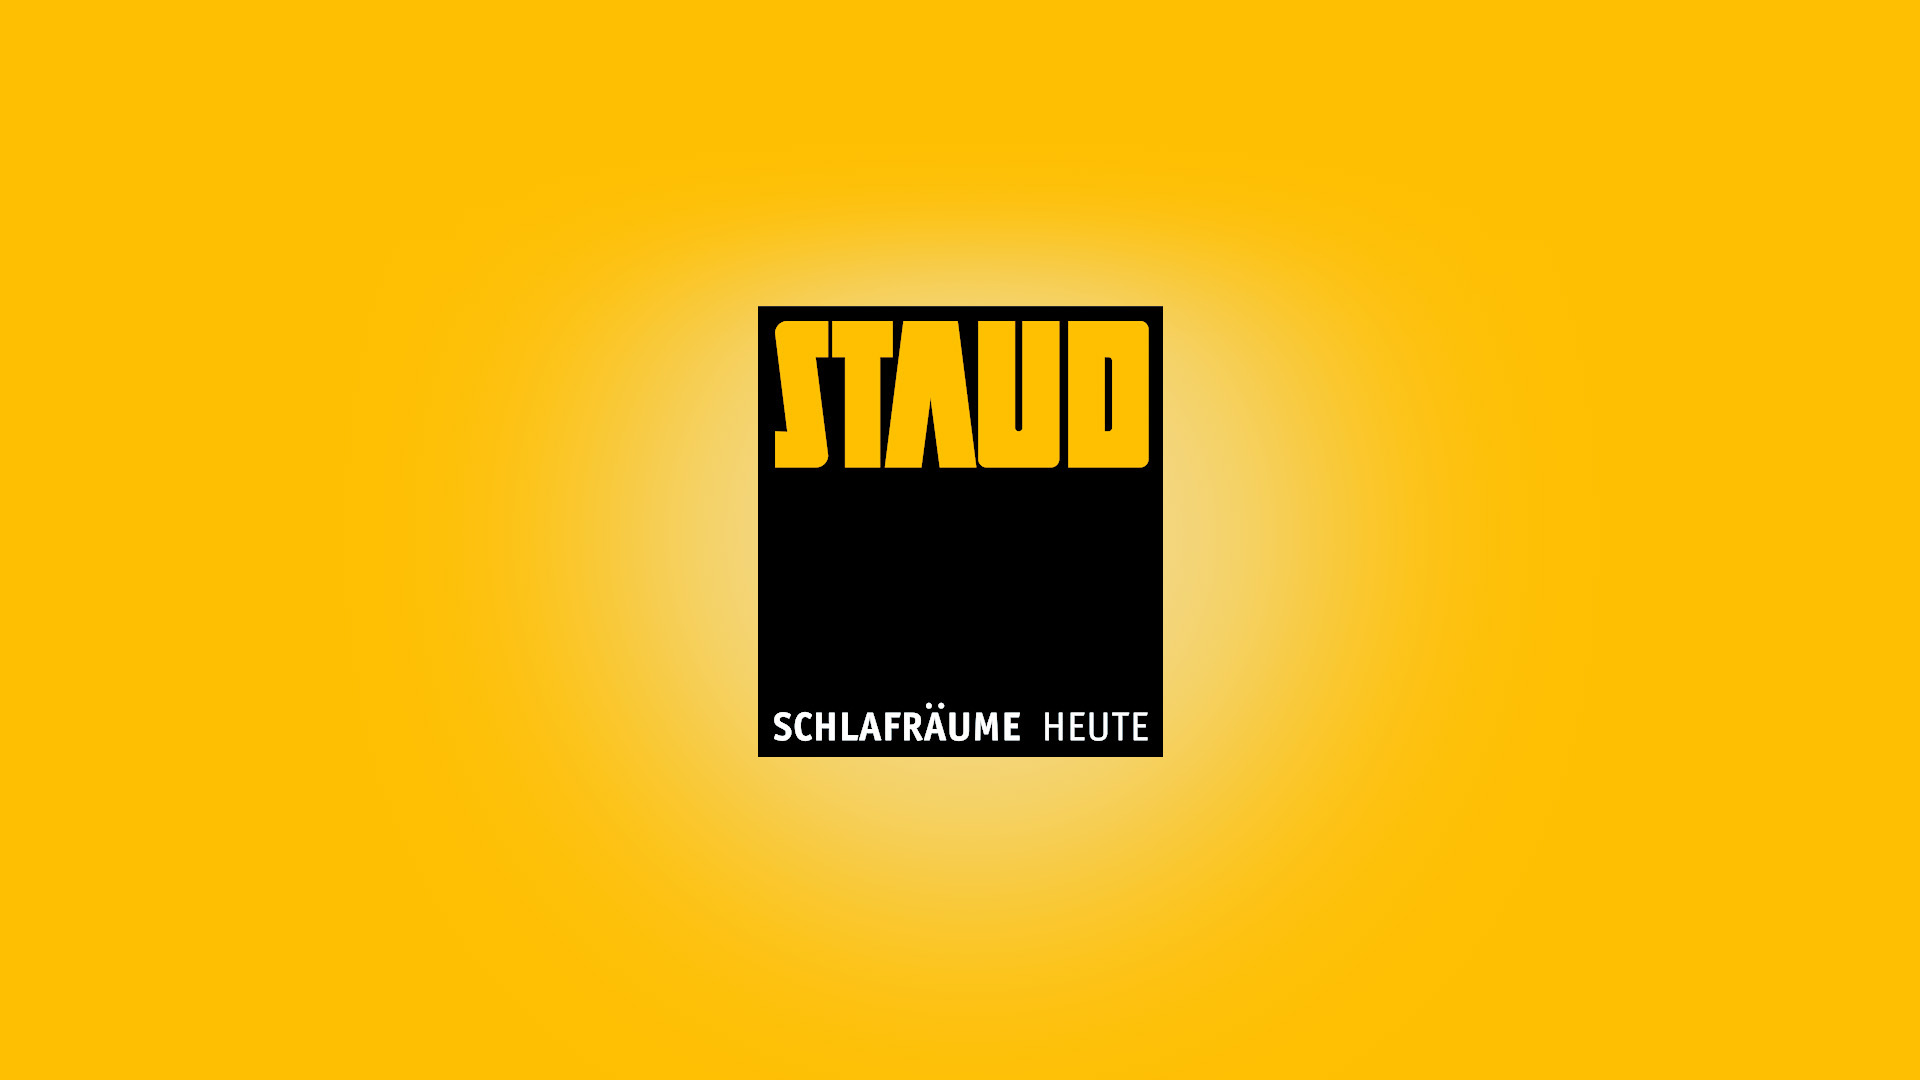 Staud-final6 Kopie